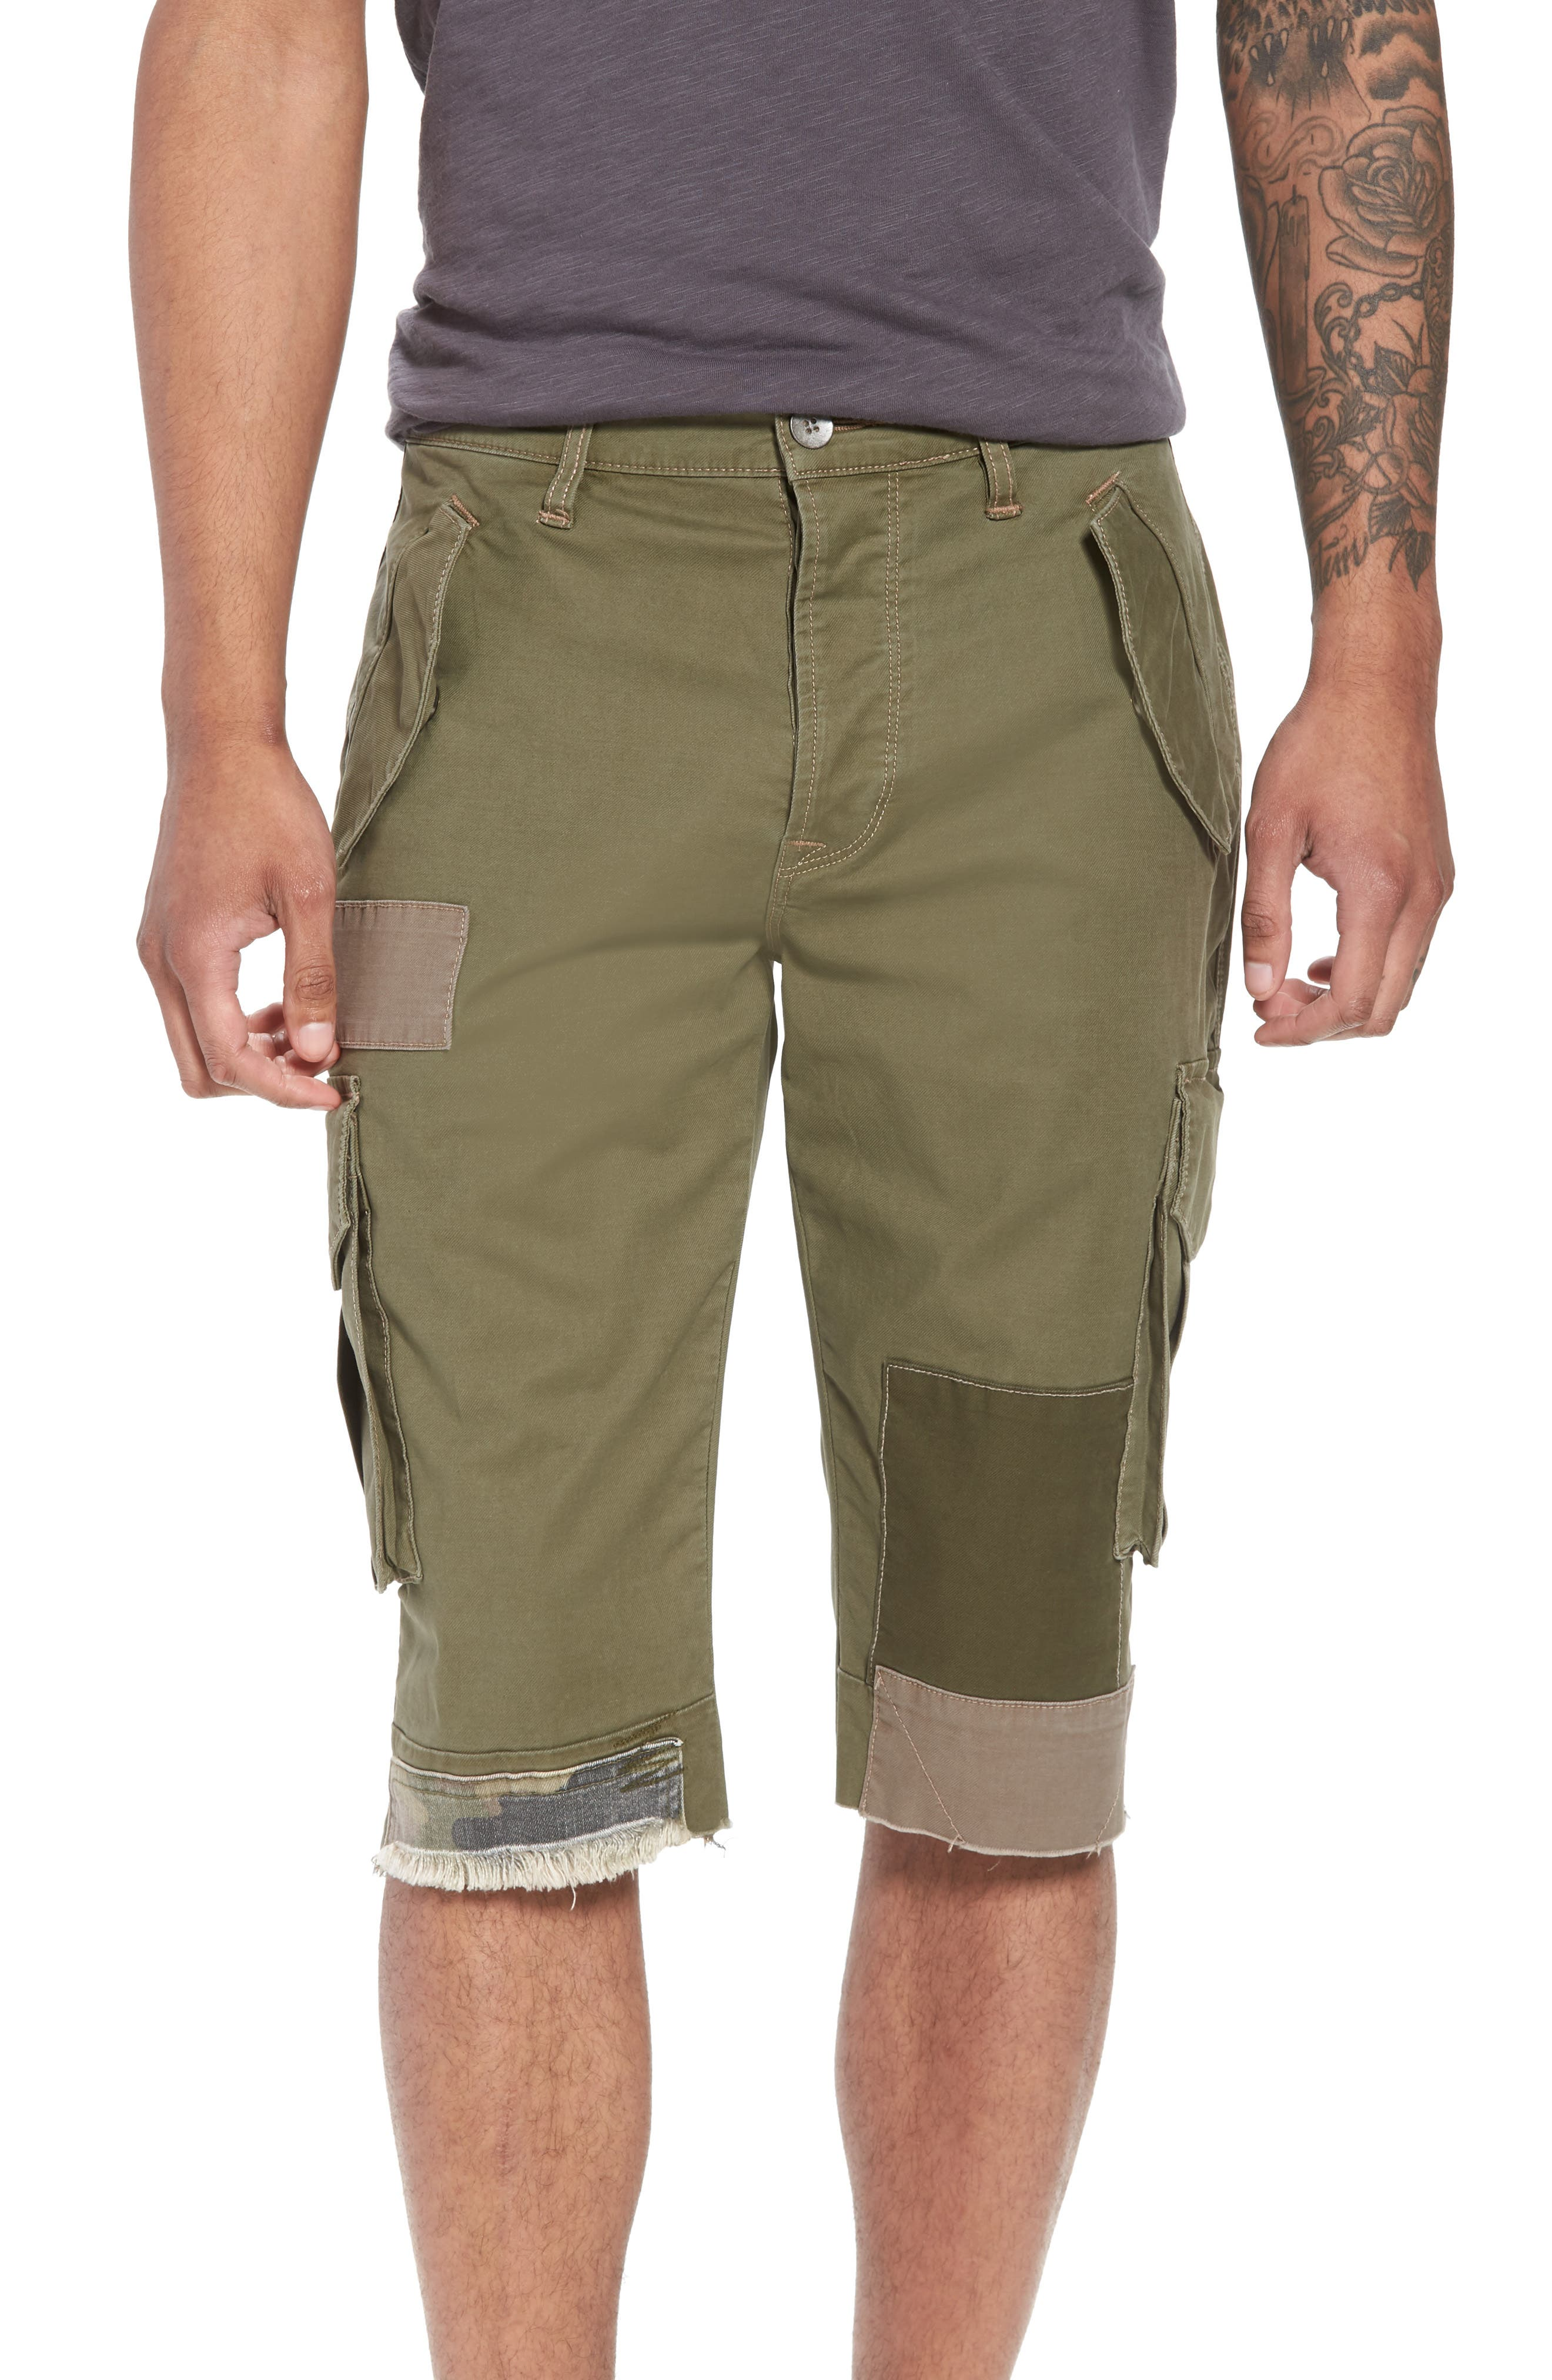 Slim Fit Cargo Shorts,                         Main,                         color, Army Green 2